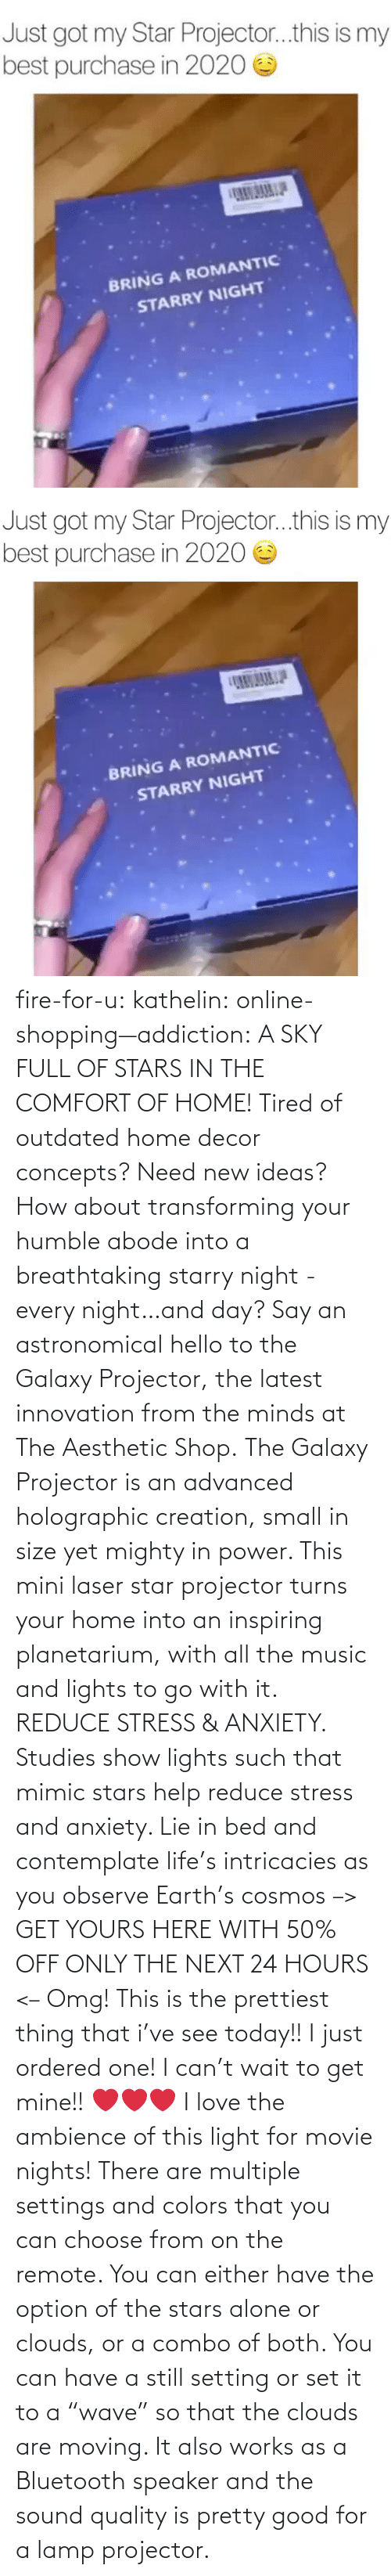 "Help: fire-for-u:  kathelin: online-shopping—addiction:  A SKY FULL OF STARS IN THE COMFORT OF HOME! Tired of outdated home decor concepts? Need new ideas? How about transforming your humble abode into a breathtaking starry night - every night…and day? Say an astronomical hello to the Galaxy Projector, the latest innovation from the minds at The Aesthetic Shop. The Galaxy Projector is an advanced holographic creation, small in size yet mighty in power. This mini laser star projector turns your home into an inspiring planetarium, with all the music and lights to go with it. REDUCE STRESS & ANXIETY. Studies show lights such that mimic stars help reduce stress and anxiety. Lie in bed and contemplate life's intricacies as you observe Earth's cosmos  –> GET YOURS HERE WITH 50% OFF ONLY THE NEXT 24 HOURS <–   Omg! This is the prettiest thing that i've see today!! I just ordered one! I can't wait to get mine!! ❤️️❤️️❤️️  I love the ambience of this light for movie nights! There are multiple settings and colors that you can choose from on the remote. You can either have the option of the stars alone or clouds, or a combo of both. You can have a still setting or set it to a ""wave"" so that the clouds are moving. It also works as a Bluetooth speaker and the sound quality is pretty good for a lamp projector."